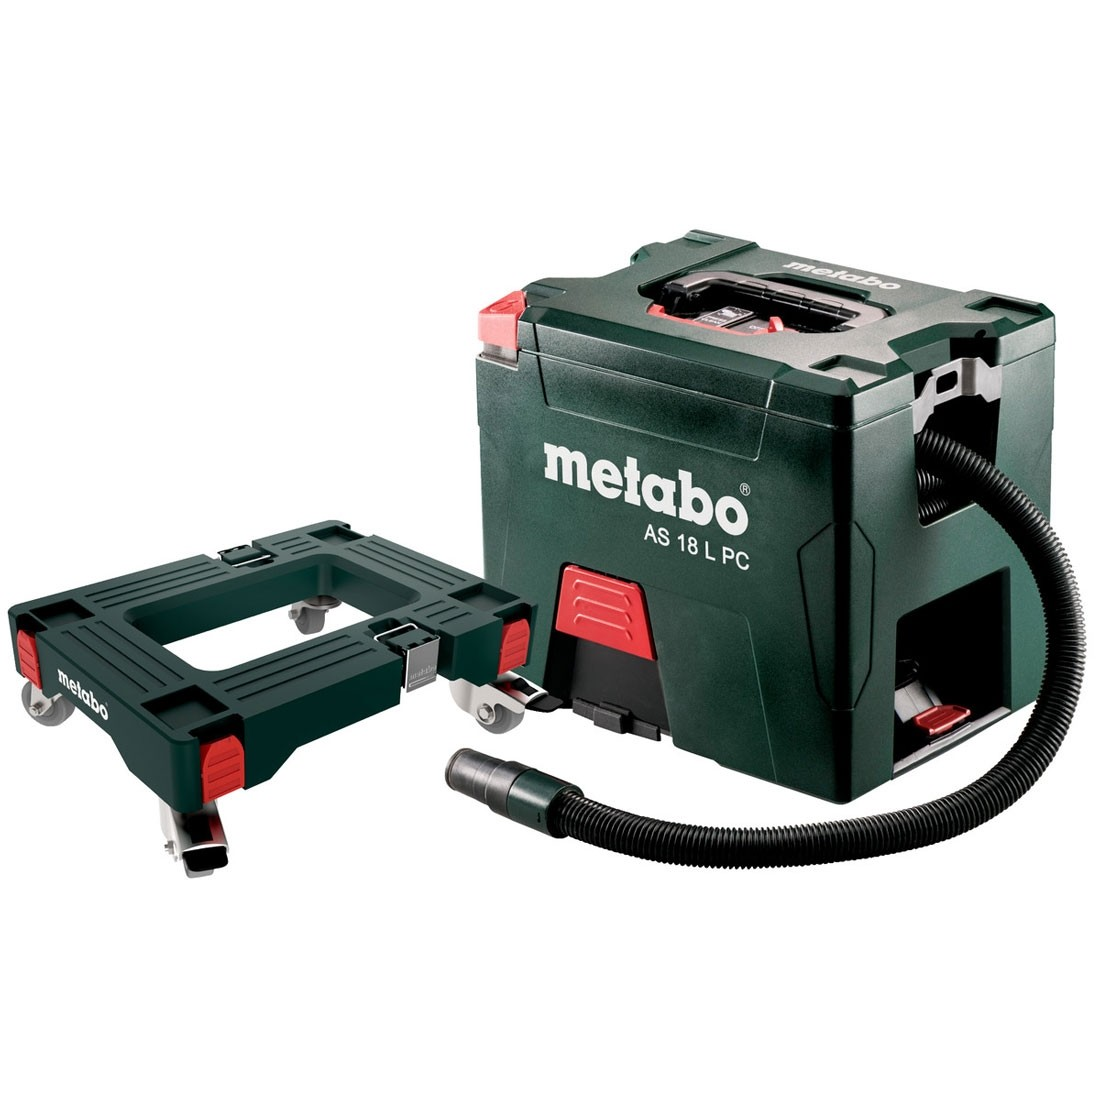 Metabo As 18 L Pc Cordless Metaloc Vacuum Body Only With